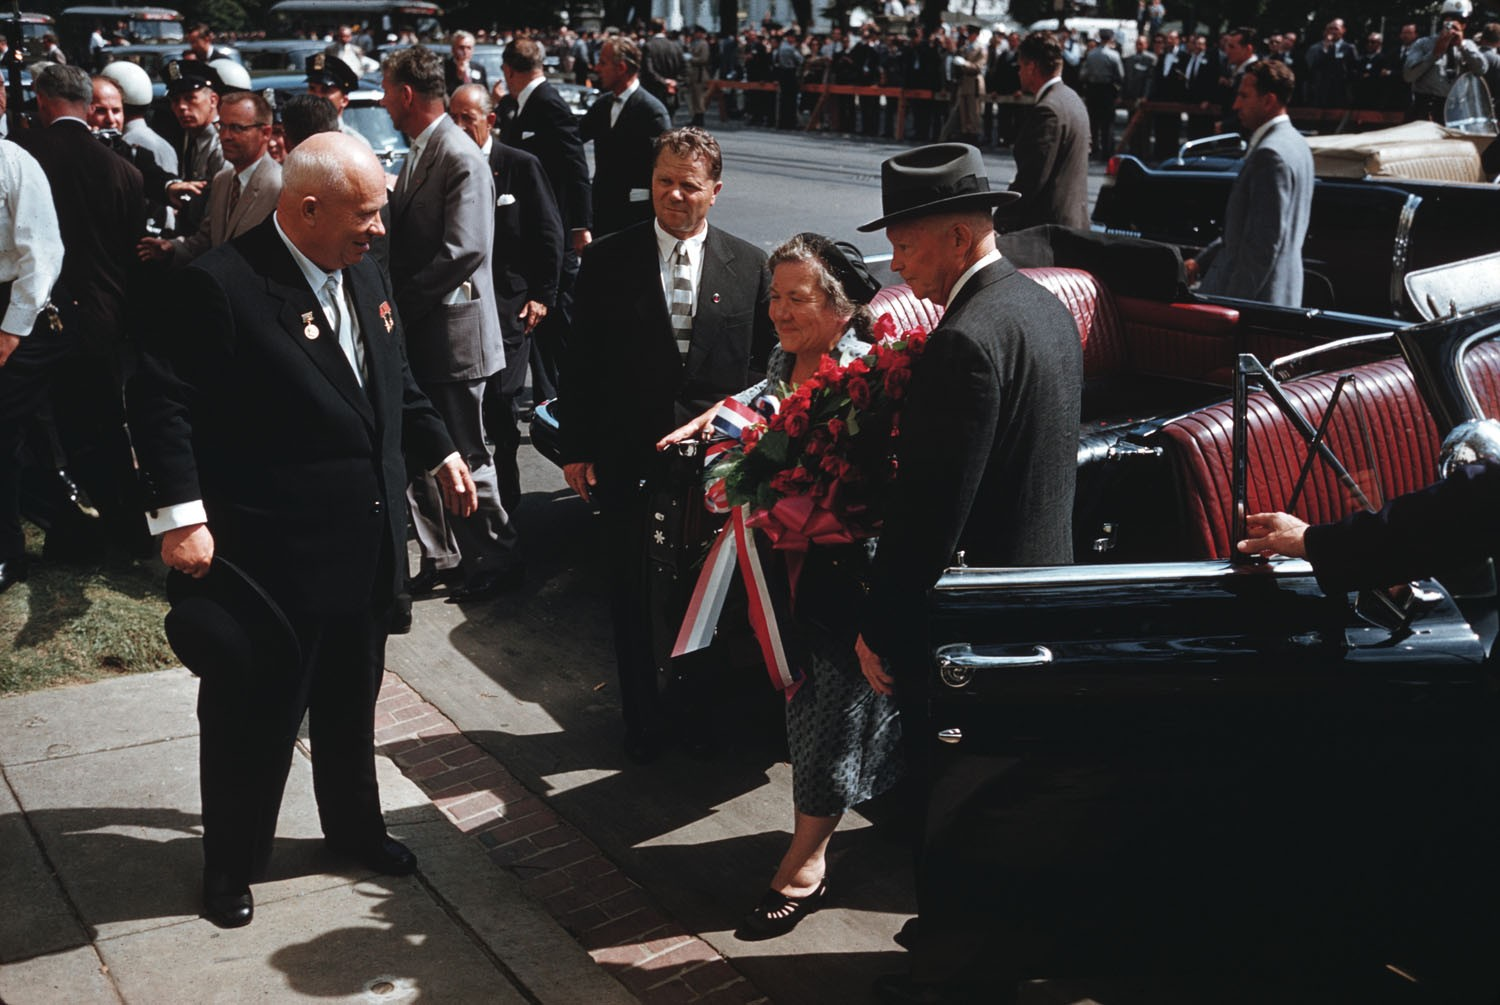 1959_Khrushchev_Eisenhower_Washington